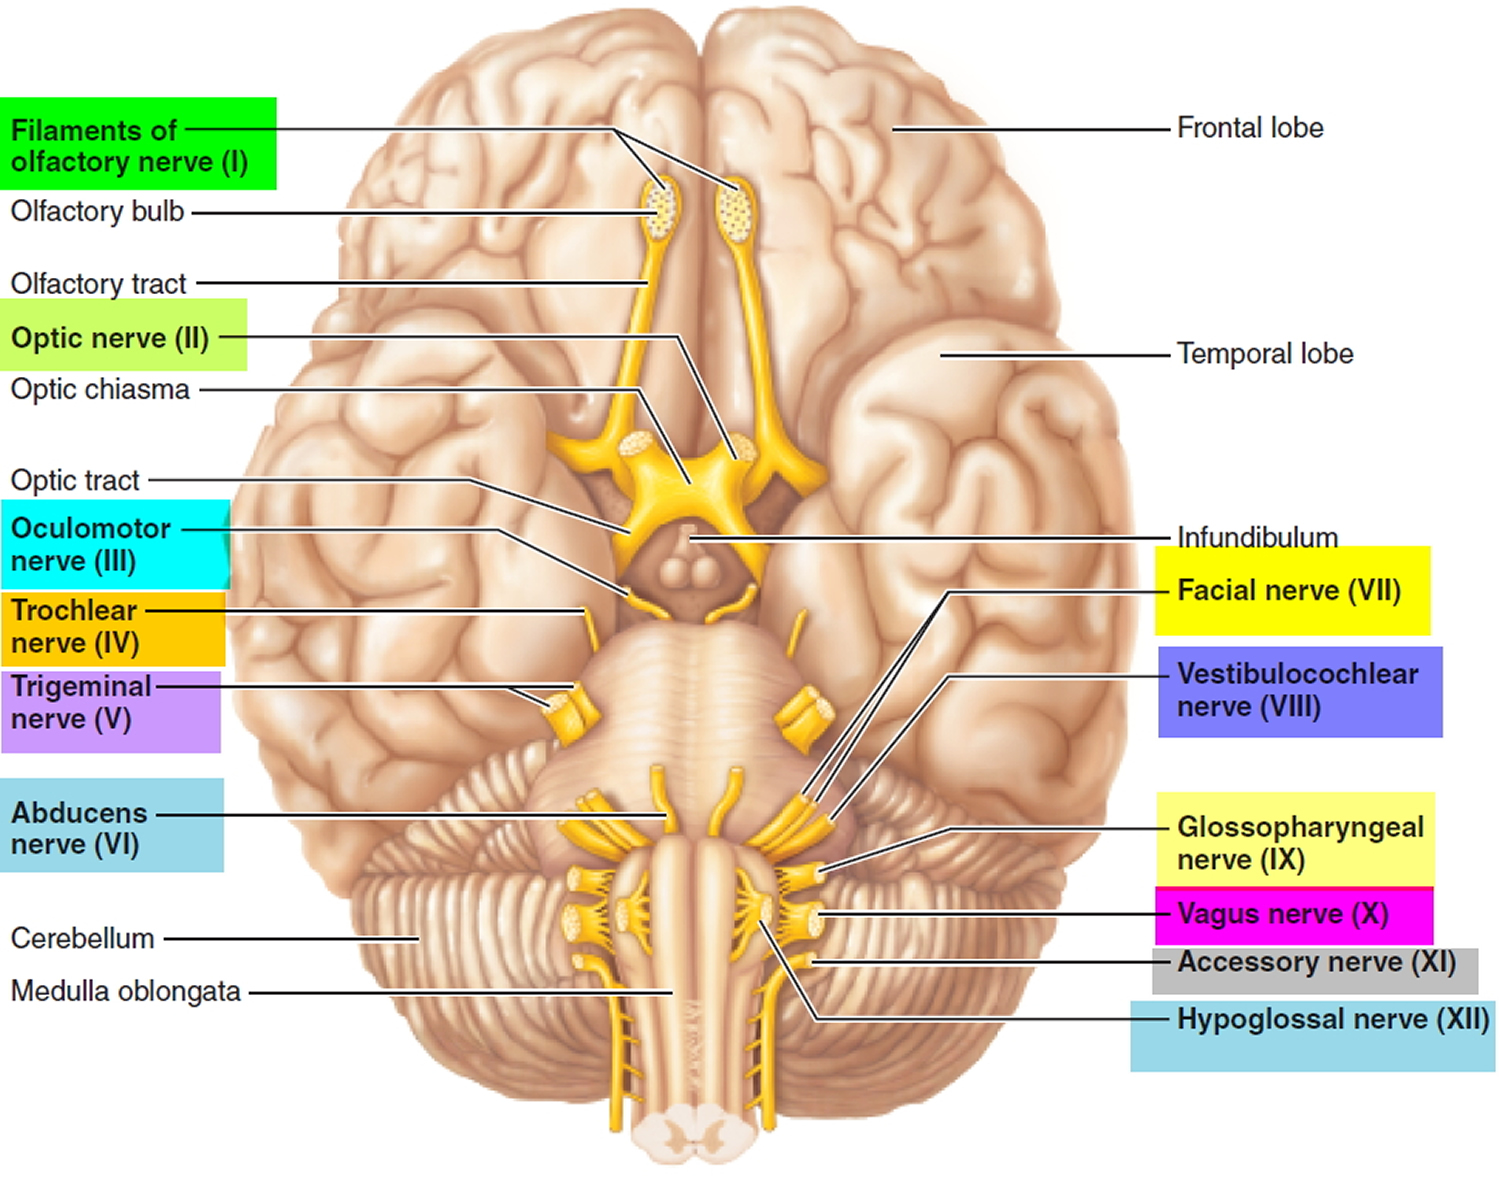 Cranial Nerves - Names of the 12 Cranial Nerves, Mnemonic and Function